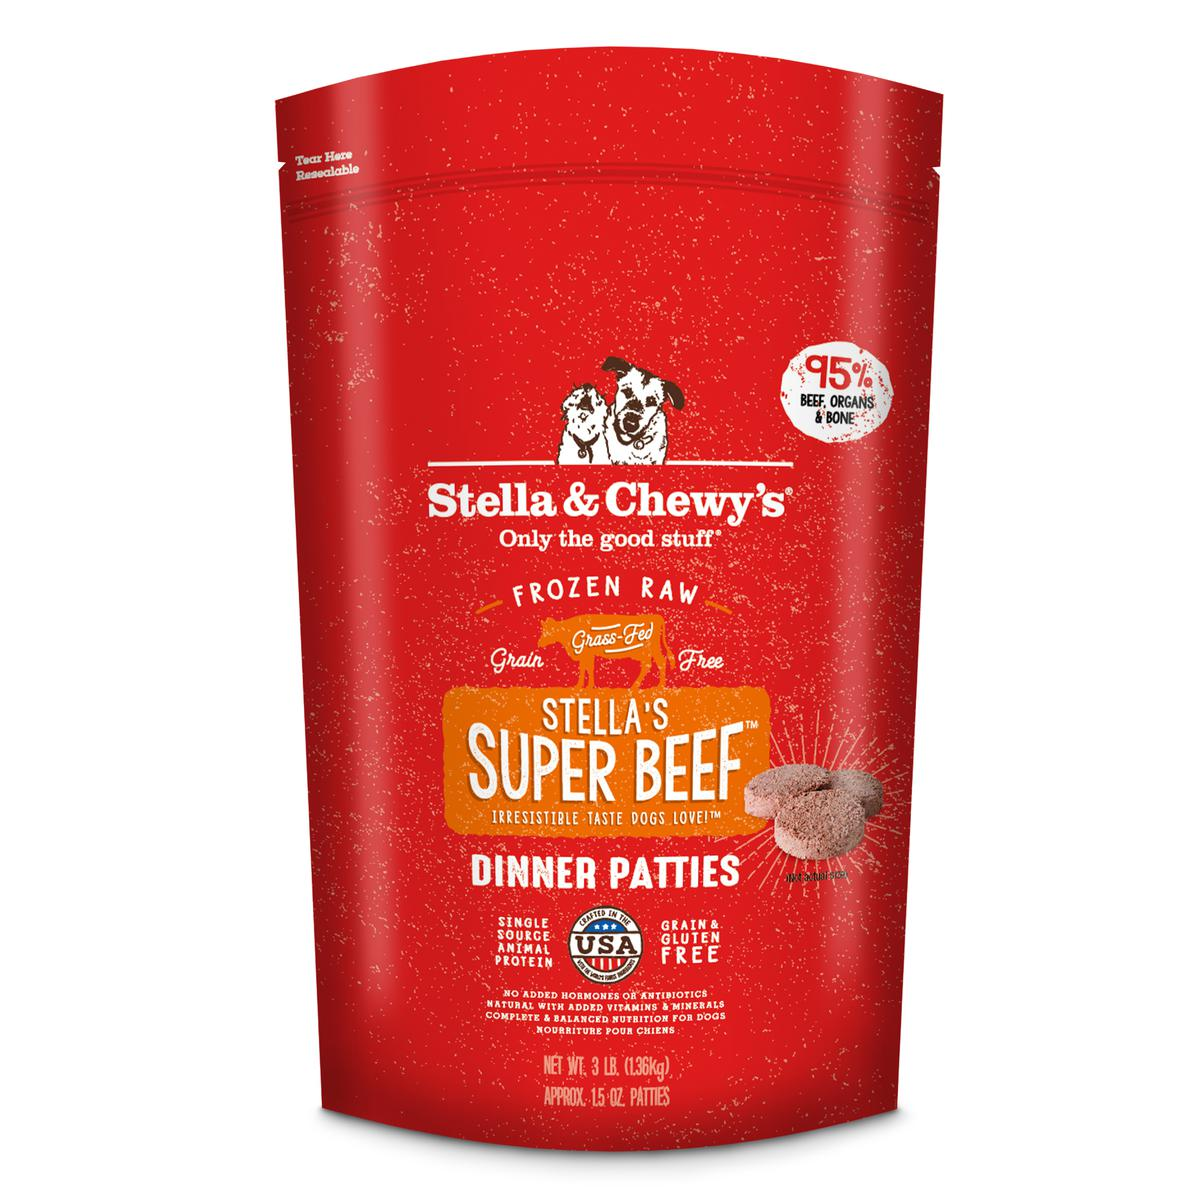 Stella & Chewy's Stella's Super Beef 1.5-oz Dinner Patties Grain-Free Raw Frozen Dog Food, 3-lb